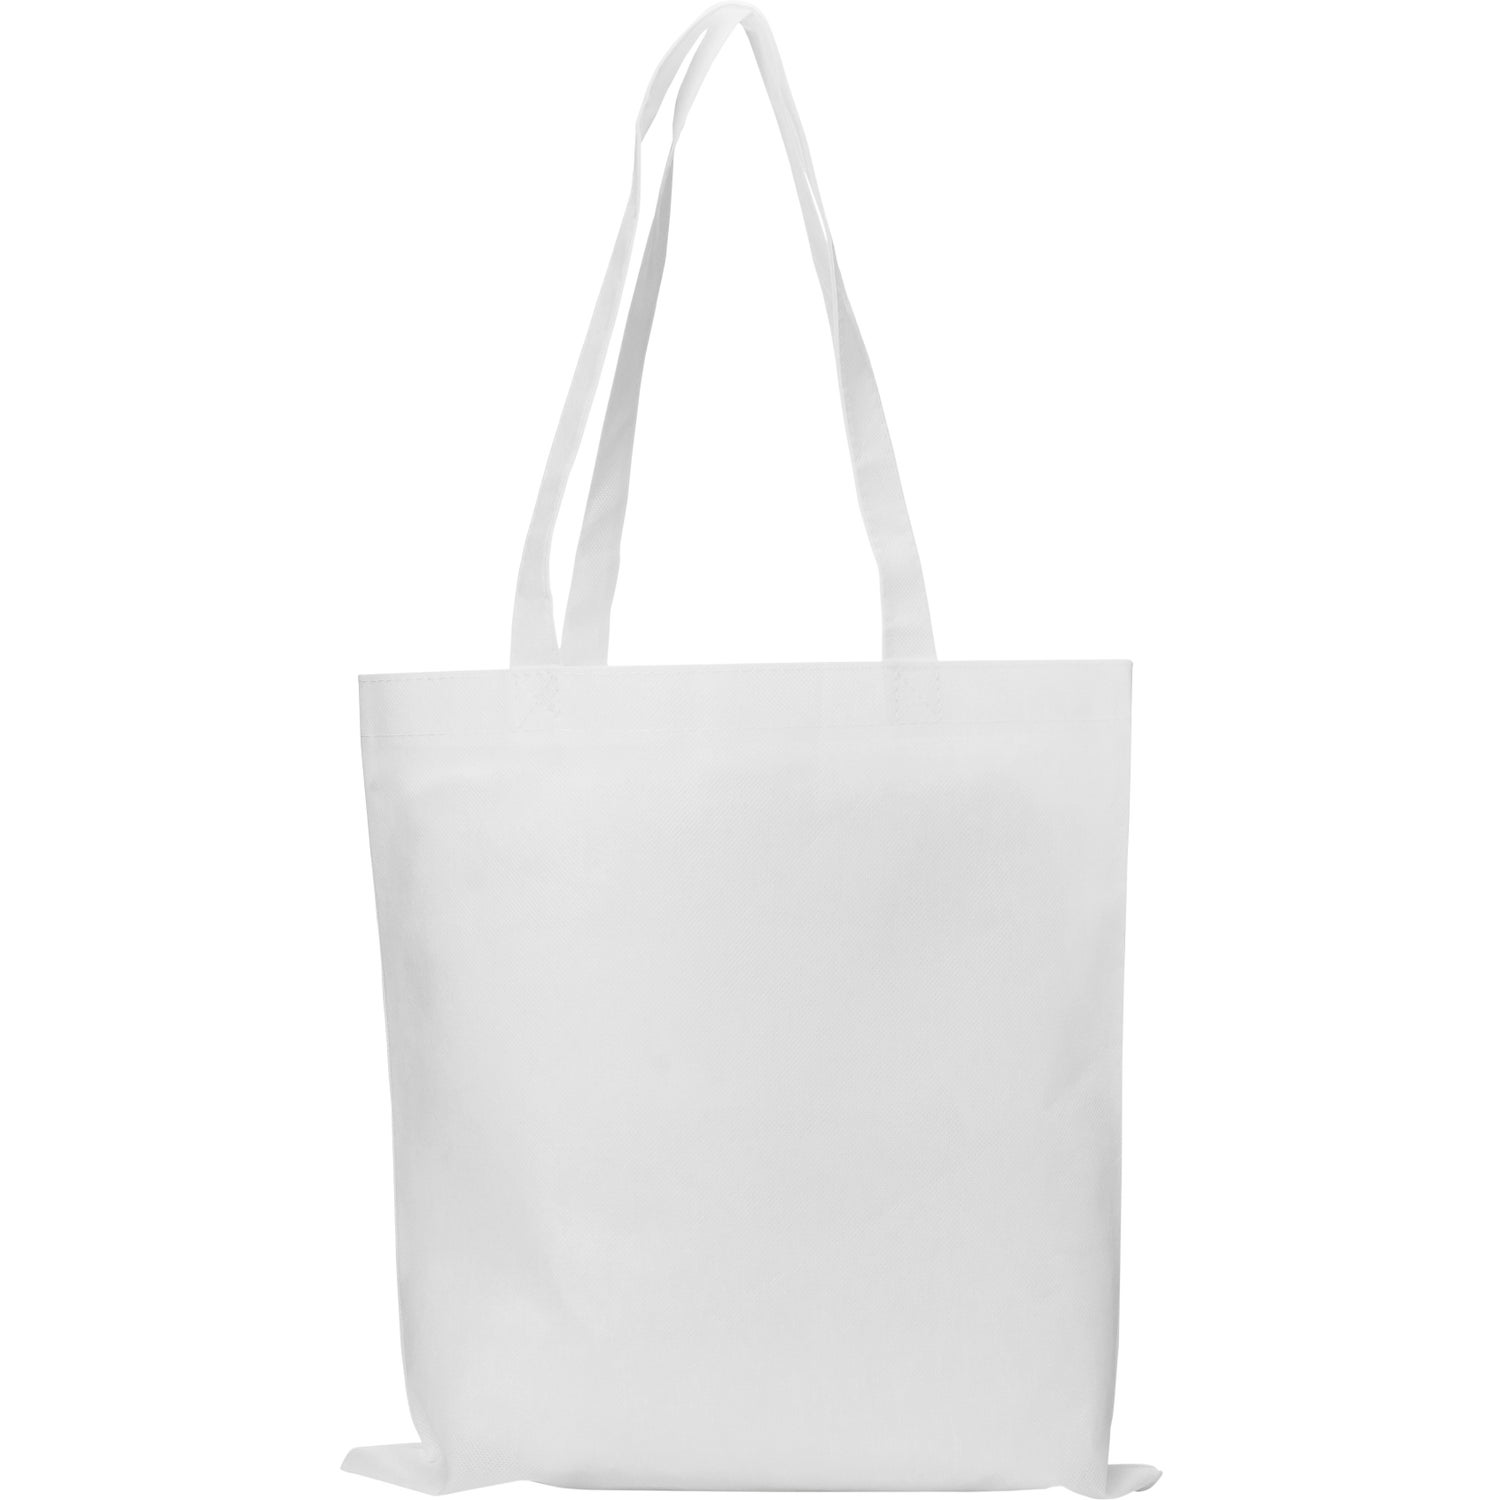 Promotional Small Eco Friendly Non Woven Tote Bags With Custom Logo For 0 749 Ea